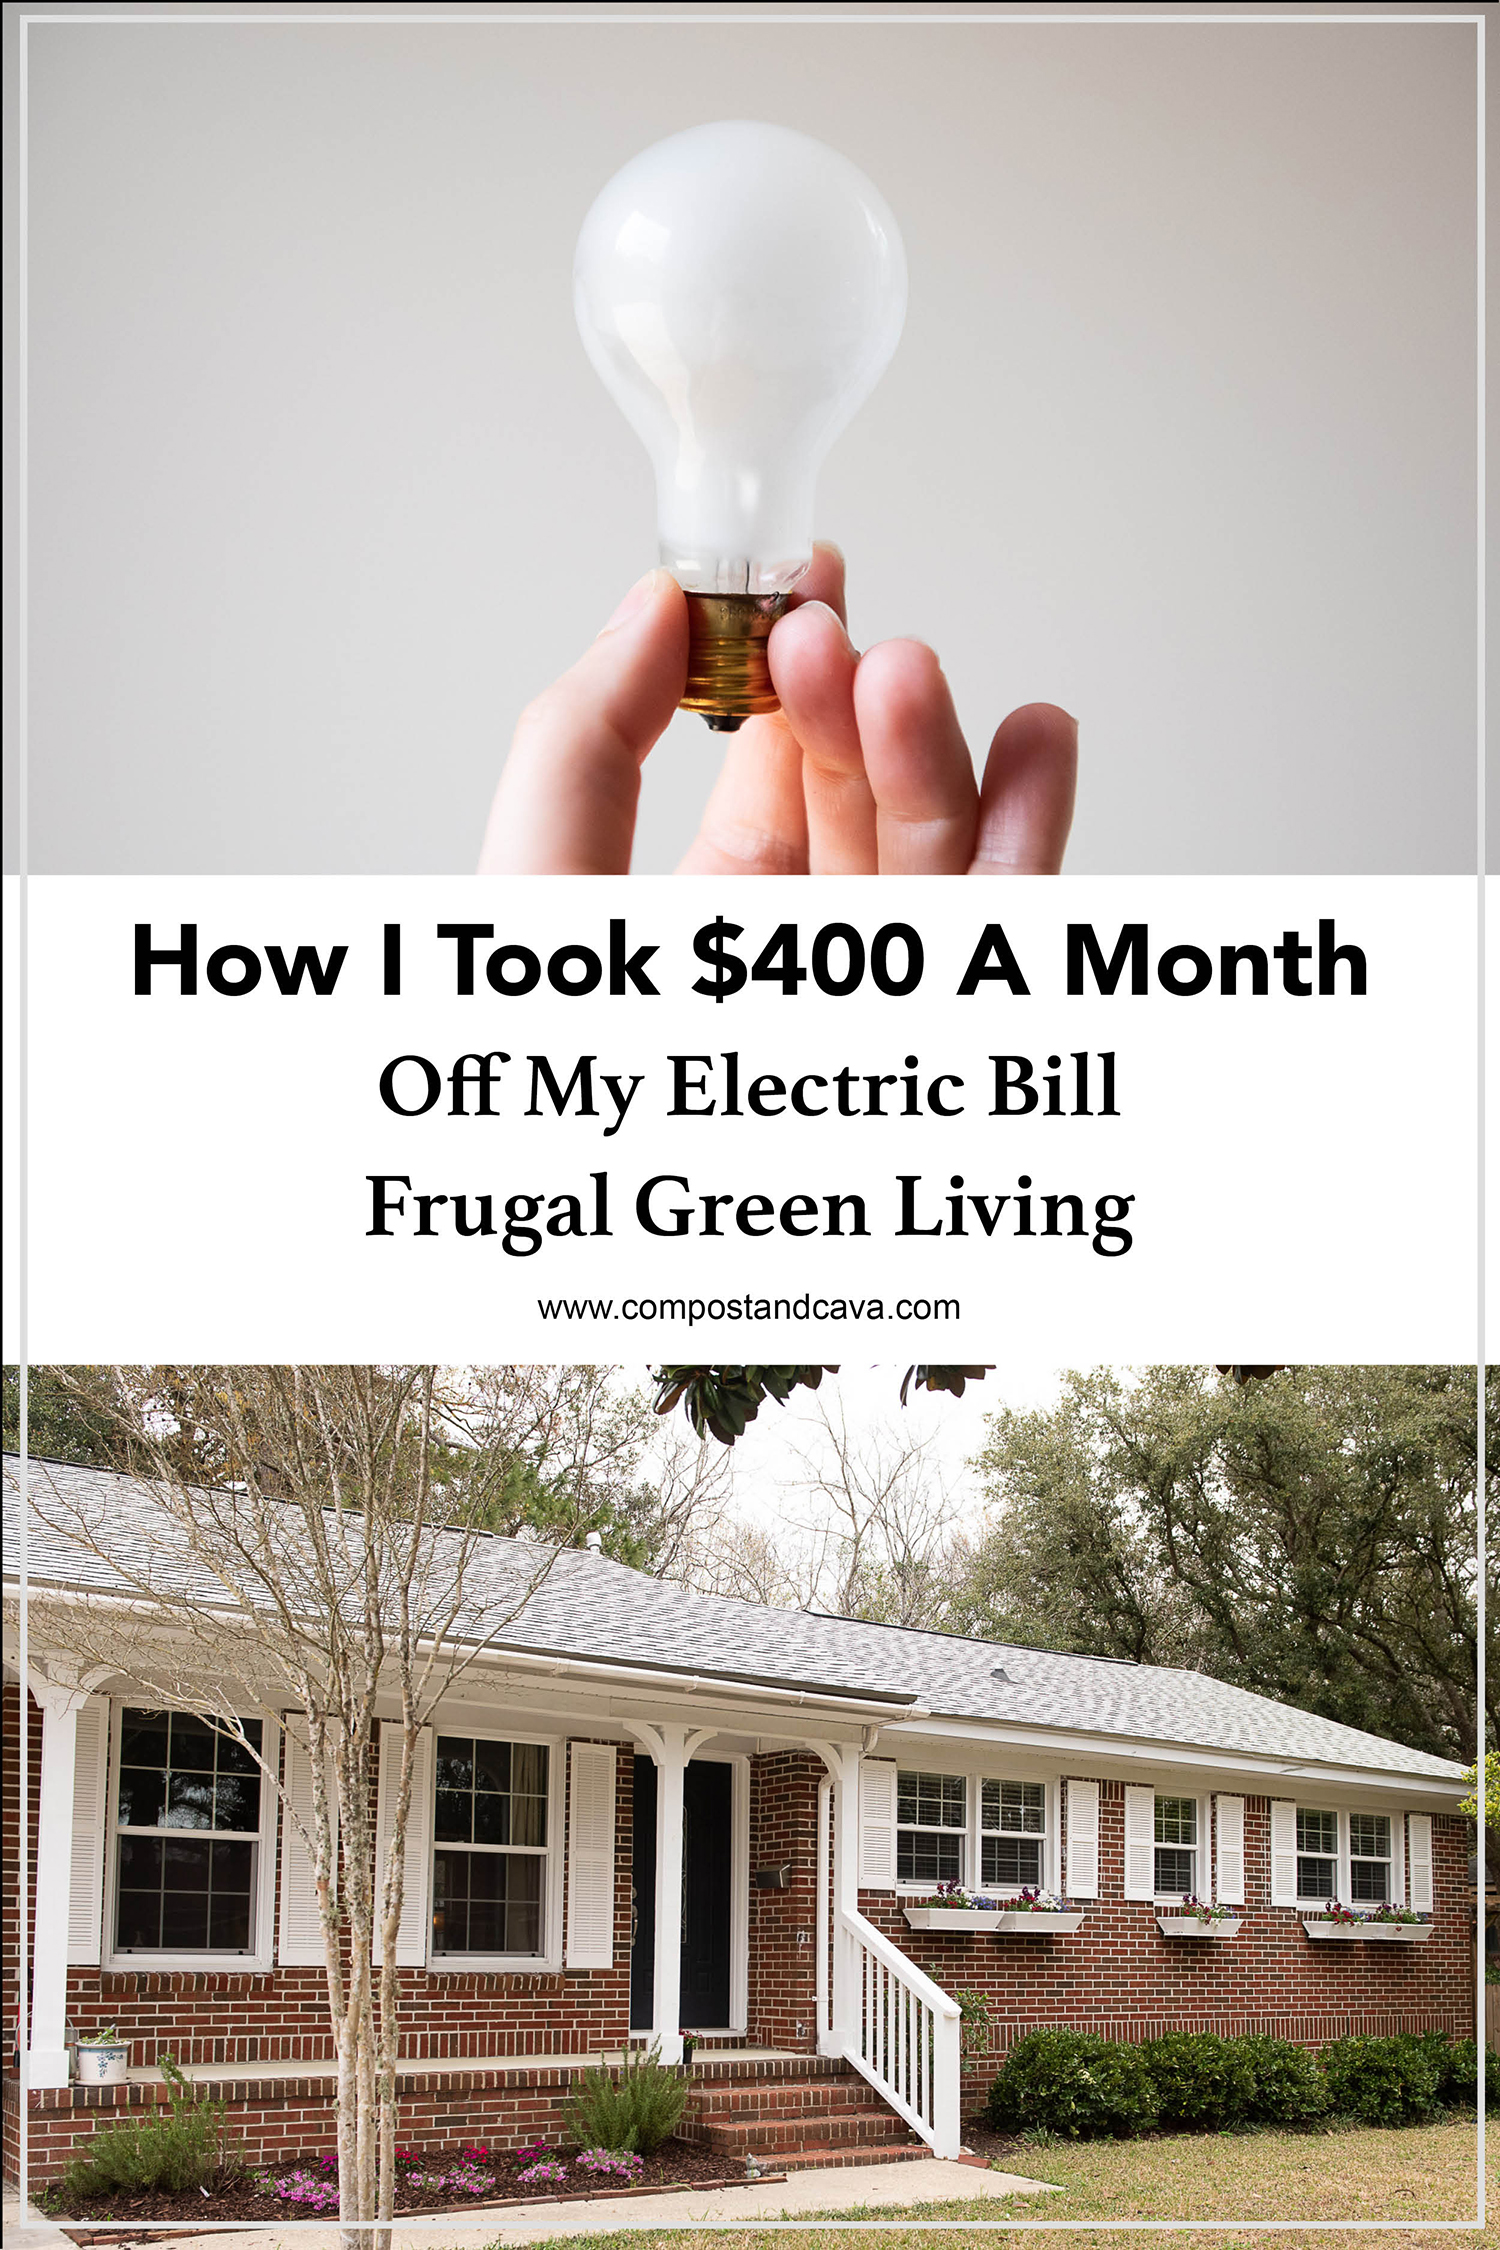 https://www.compostandcava.com/home/2017/11/16/how-i-took-400-off-my-electric-bill